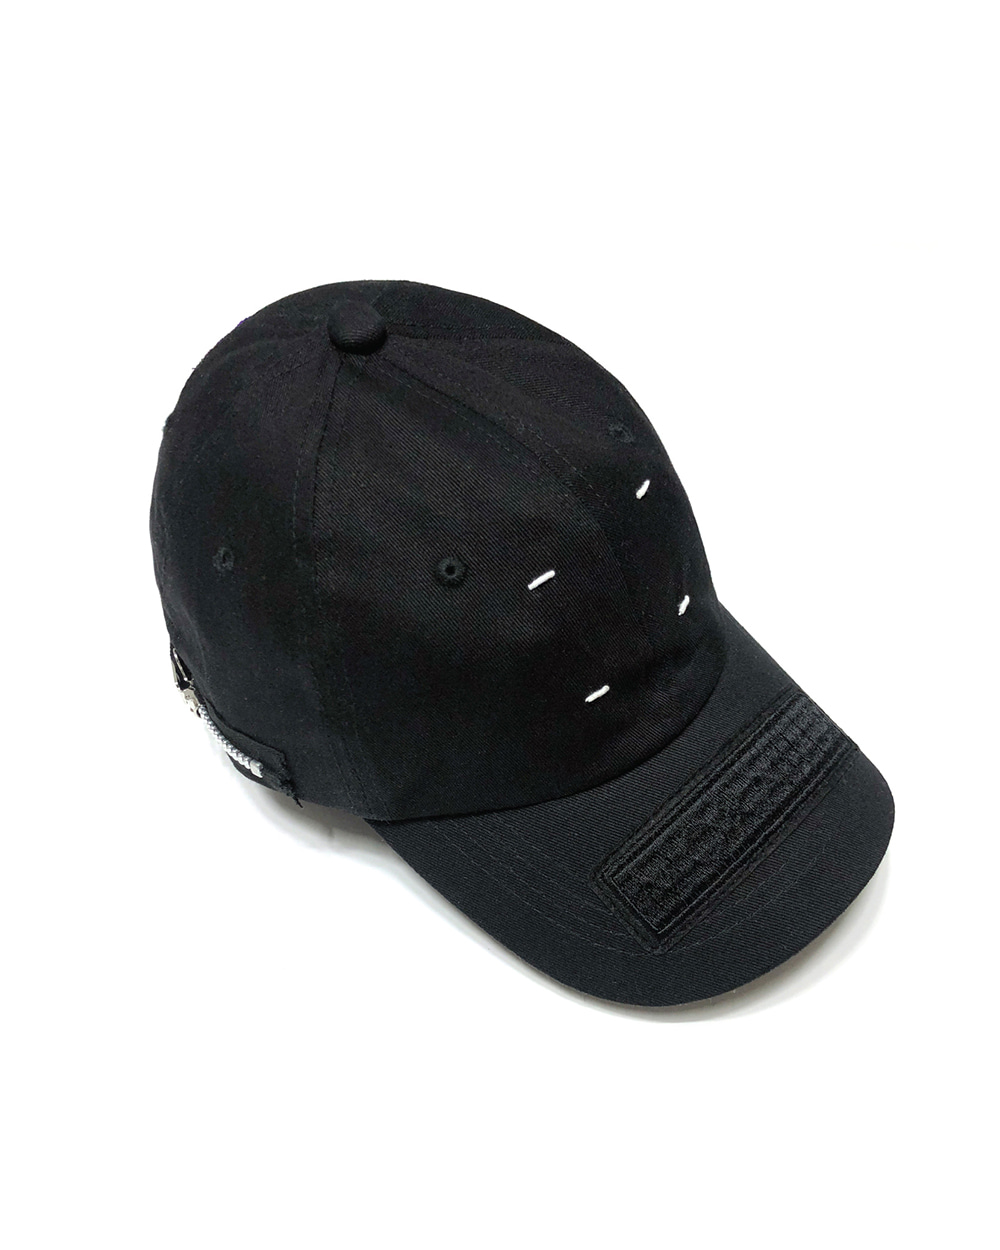 GOOD NEWS HAND STITCH ZIPPER CAP (Black)